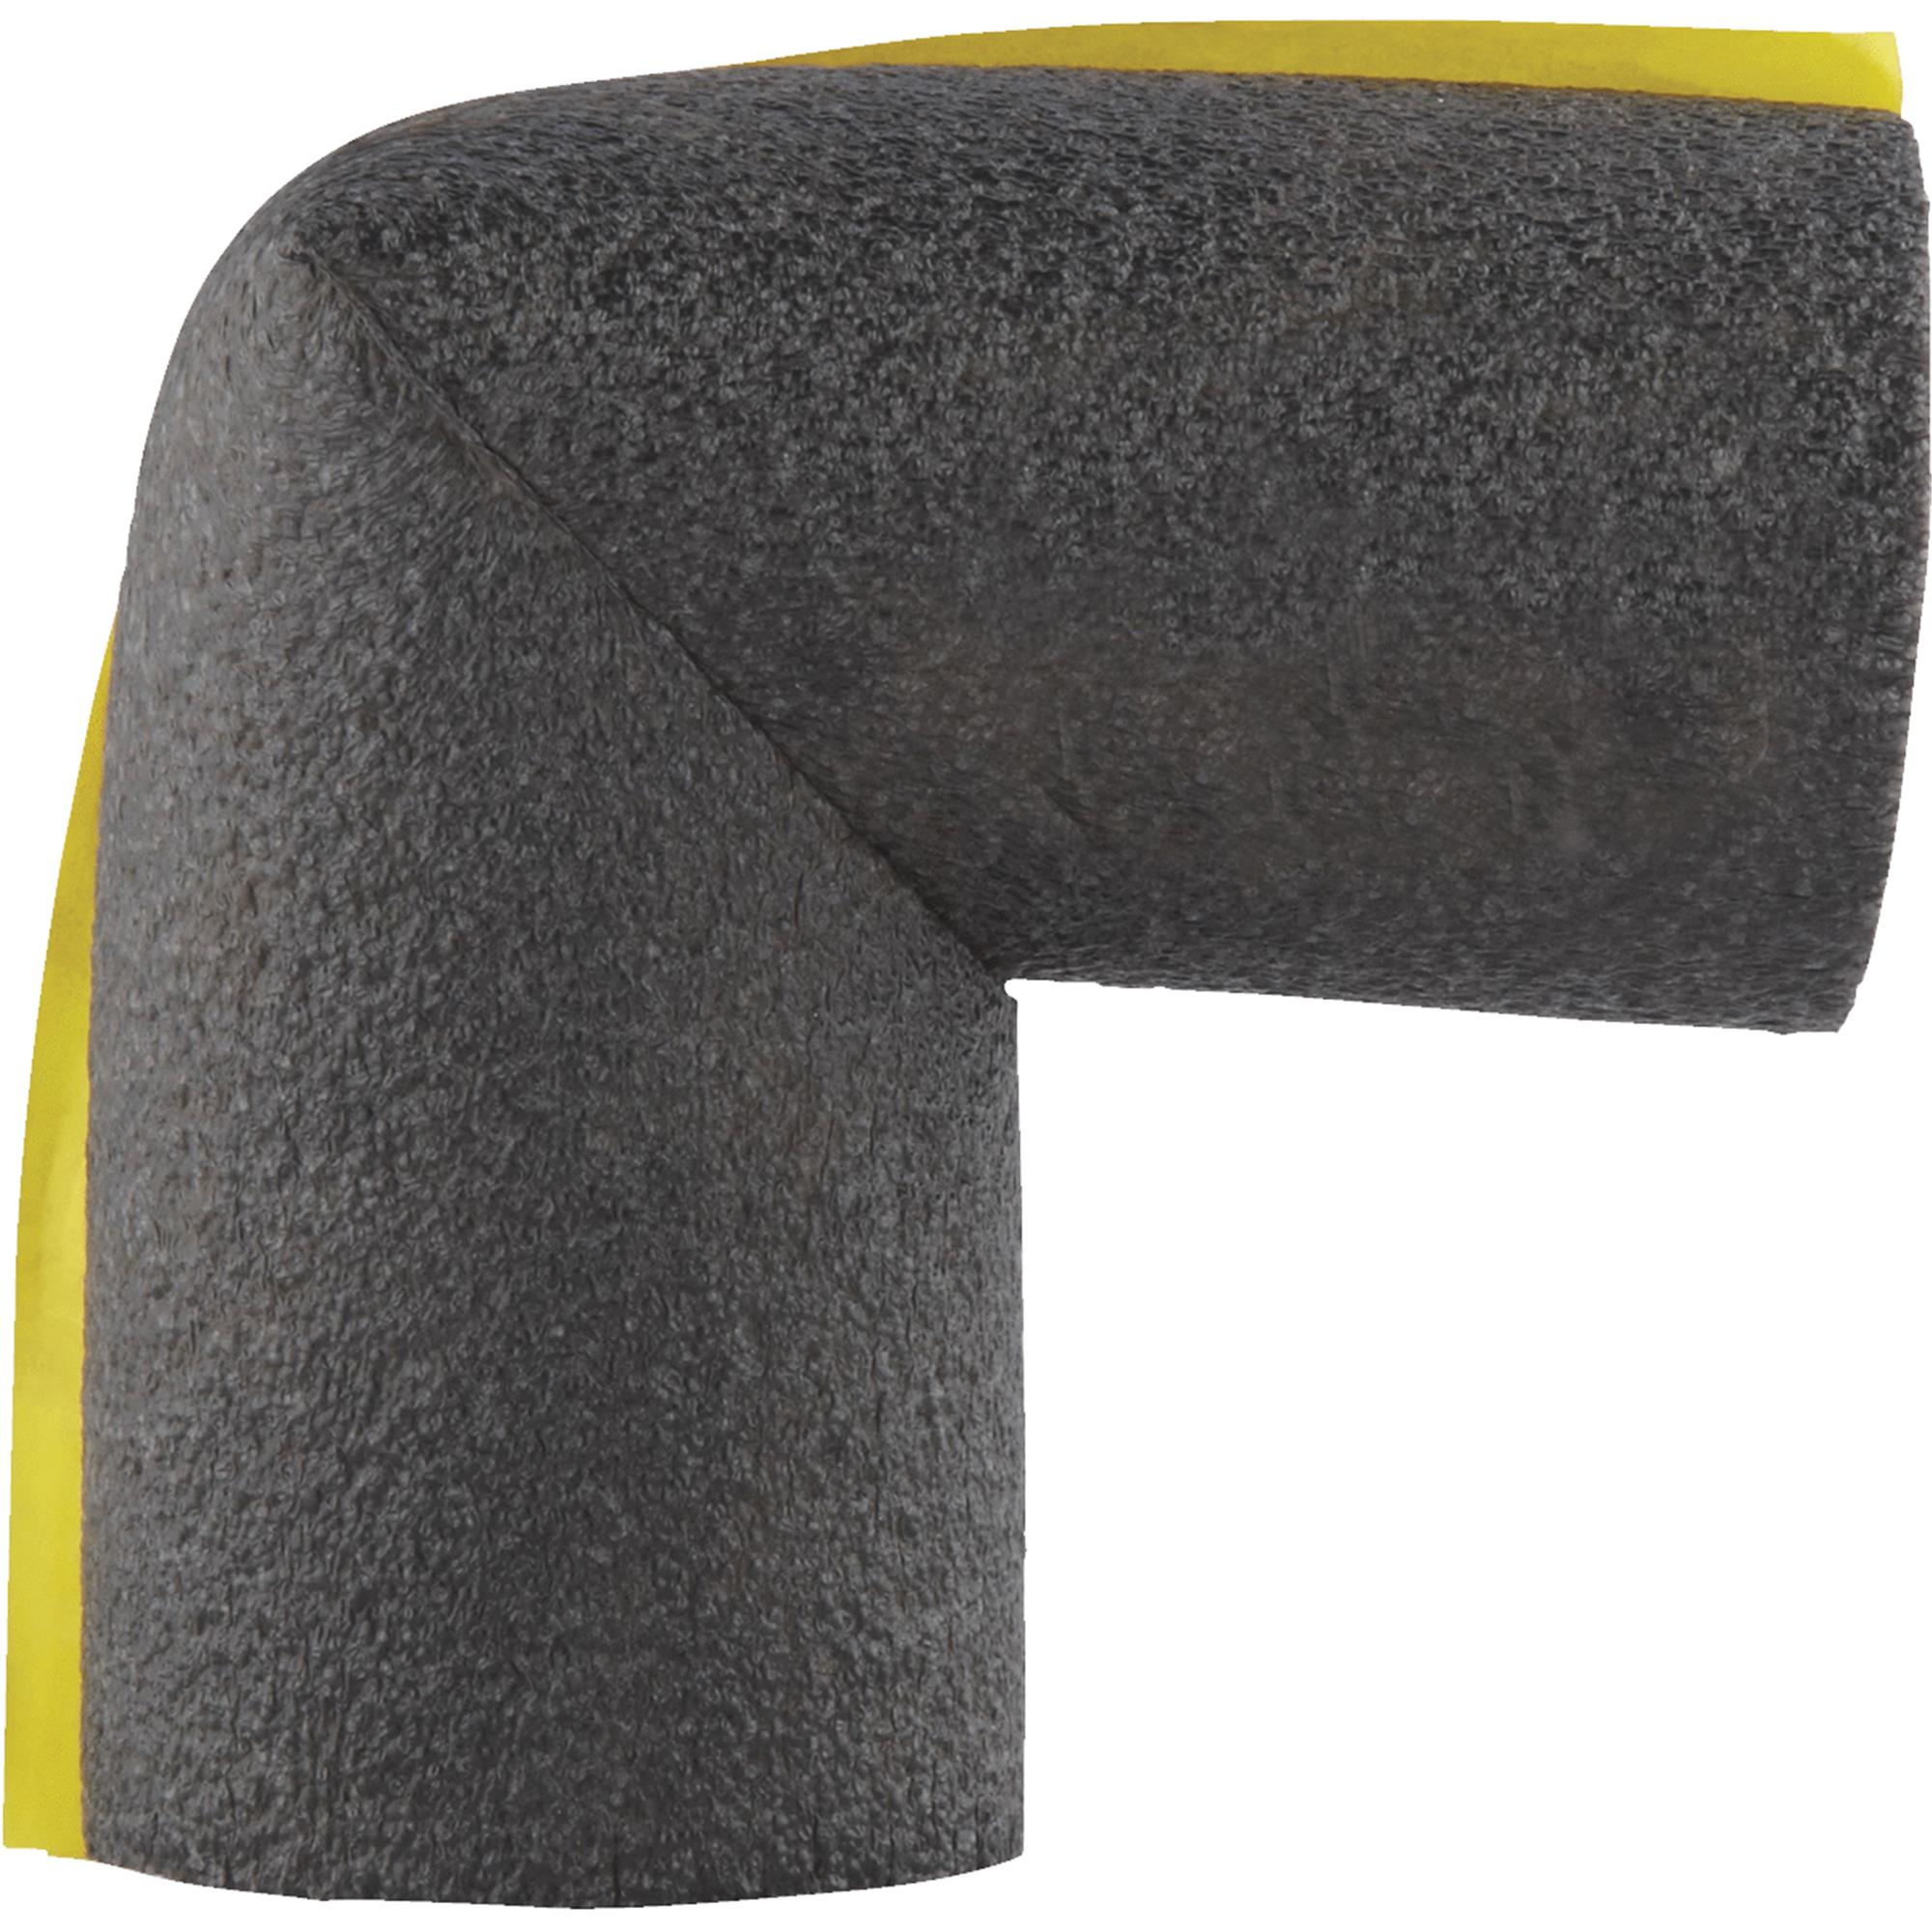 Tundra Self-Sealing Joint/Elbow Pipe Insulation Wrap